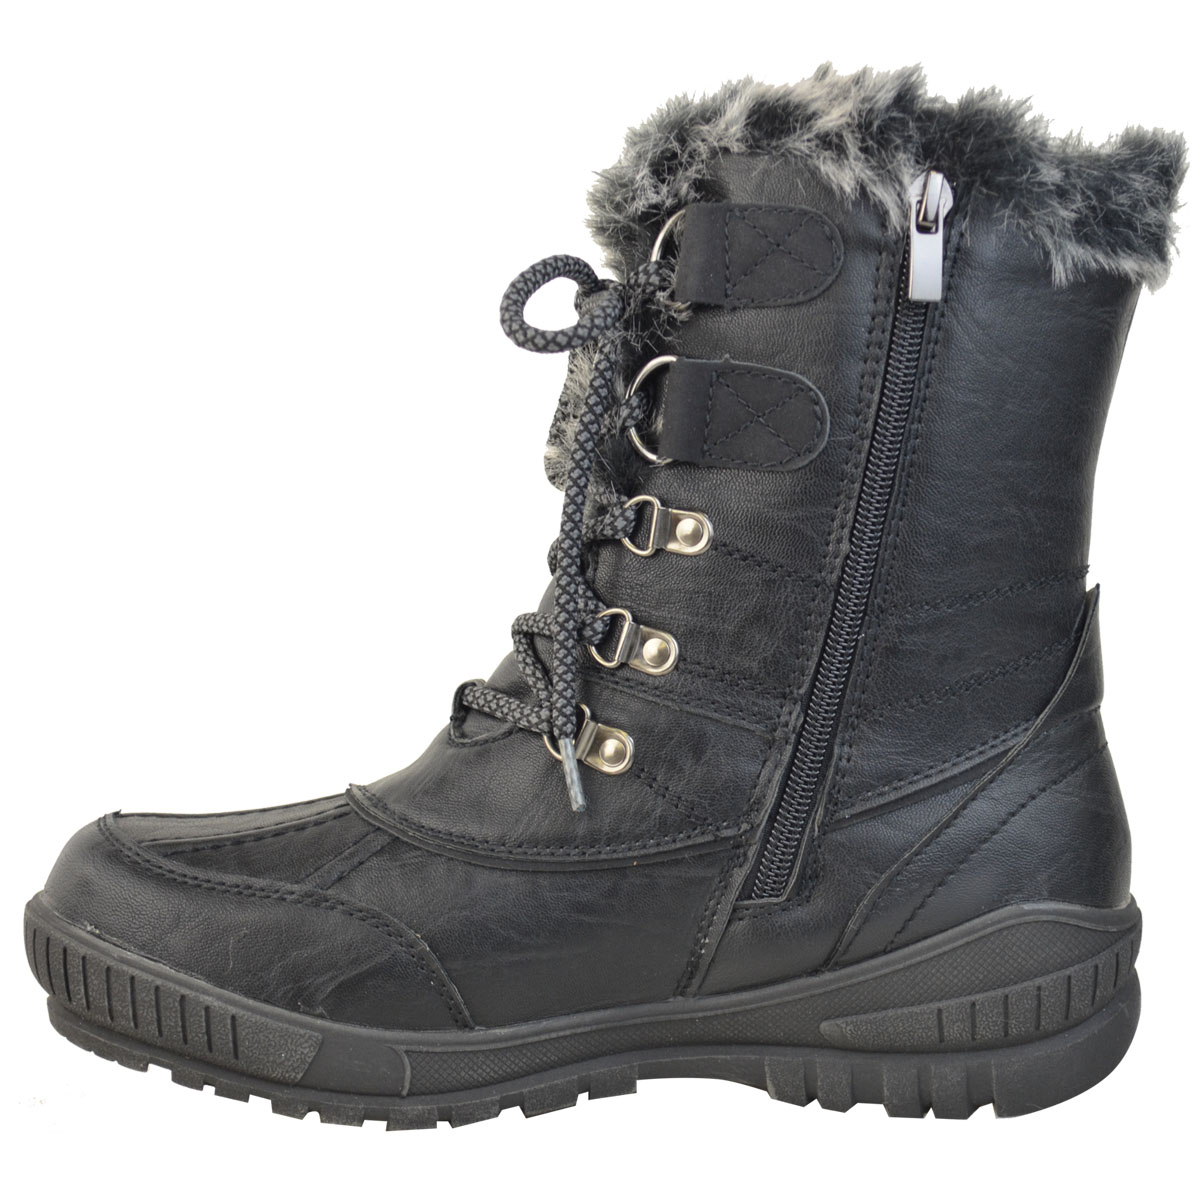 Womens-Ladies-Snow-Ski-Ankle-Boots-Winter-Rain-Thermal-Fully-Fur-Lined-UK-Size